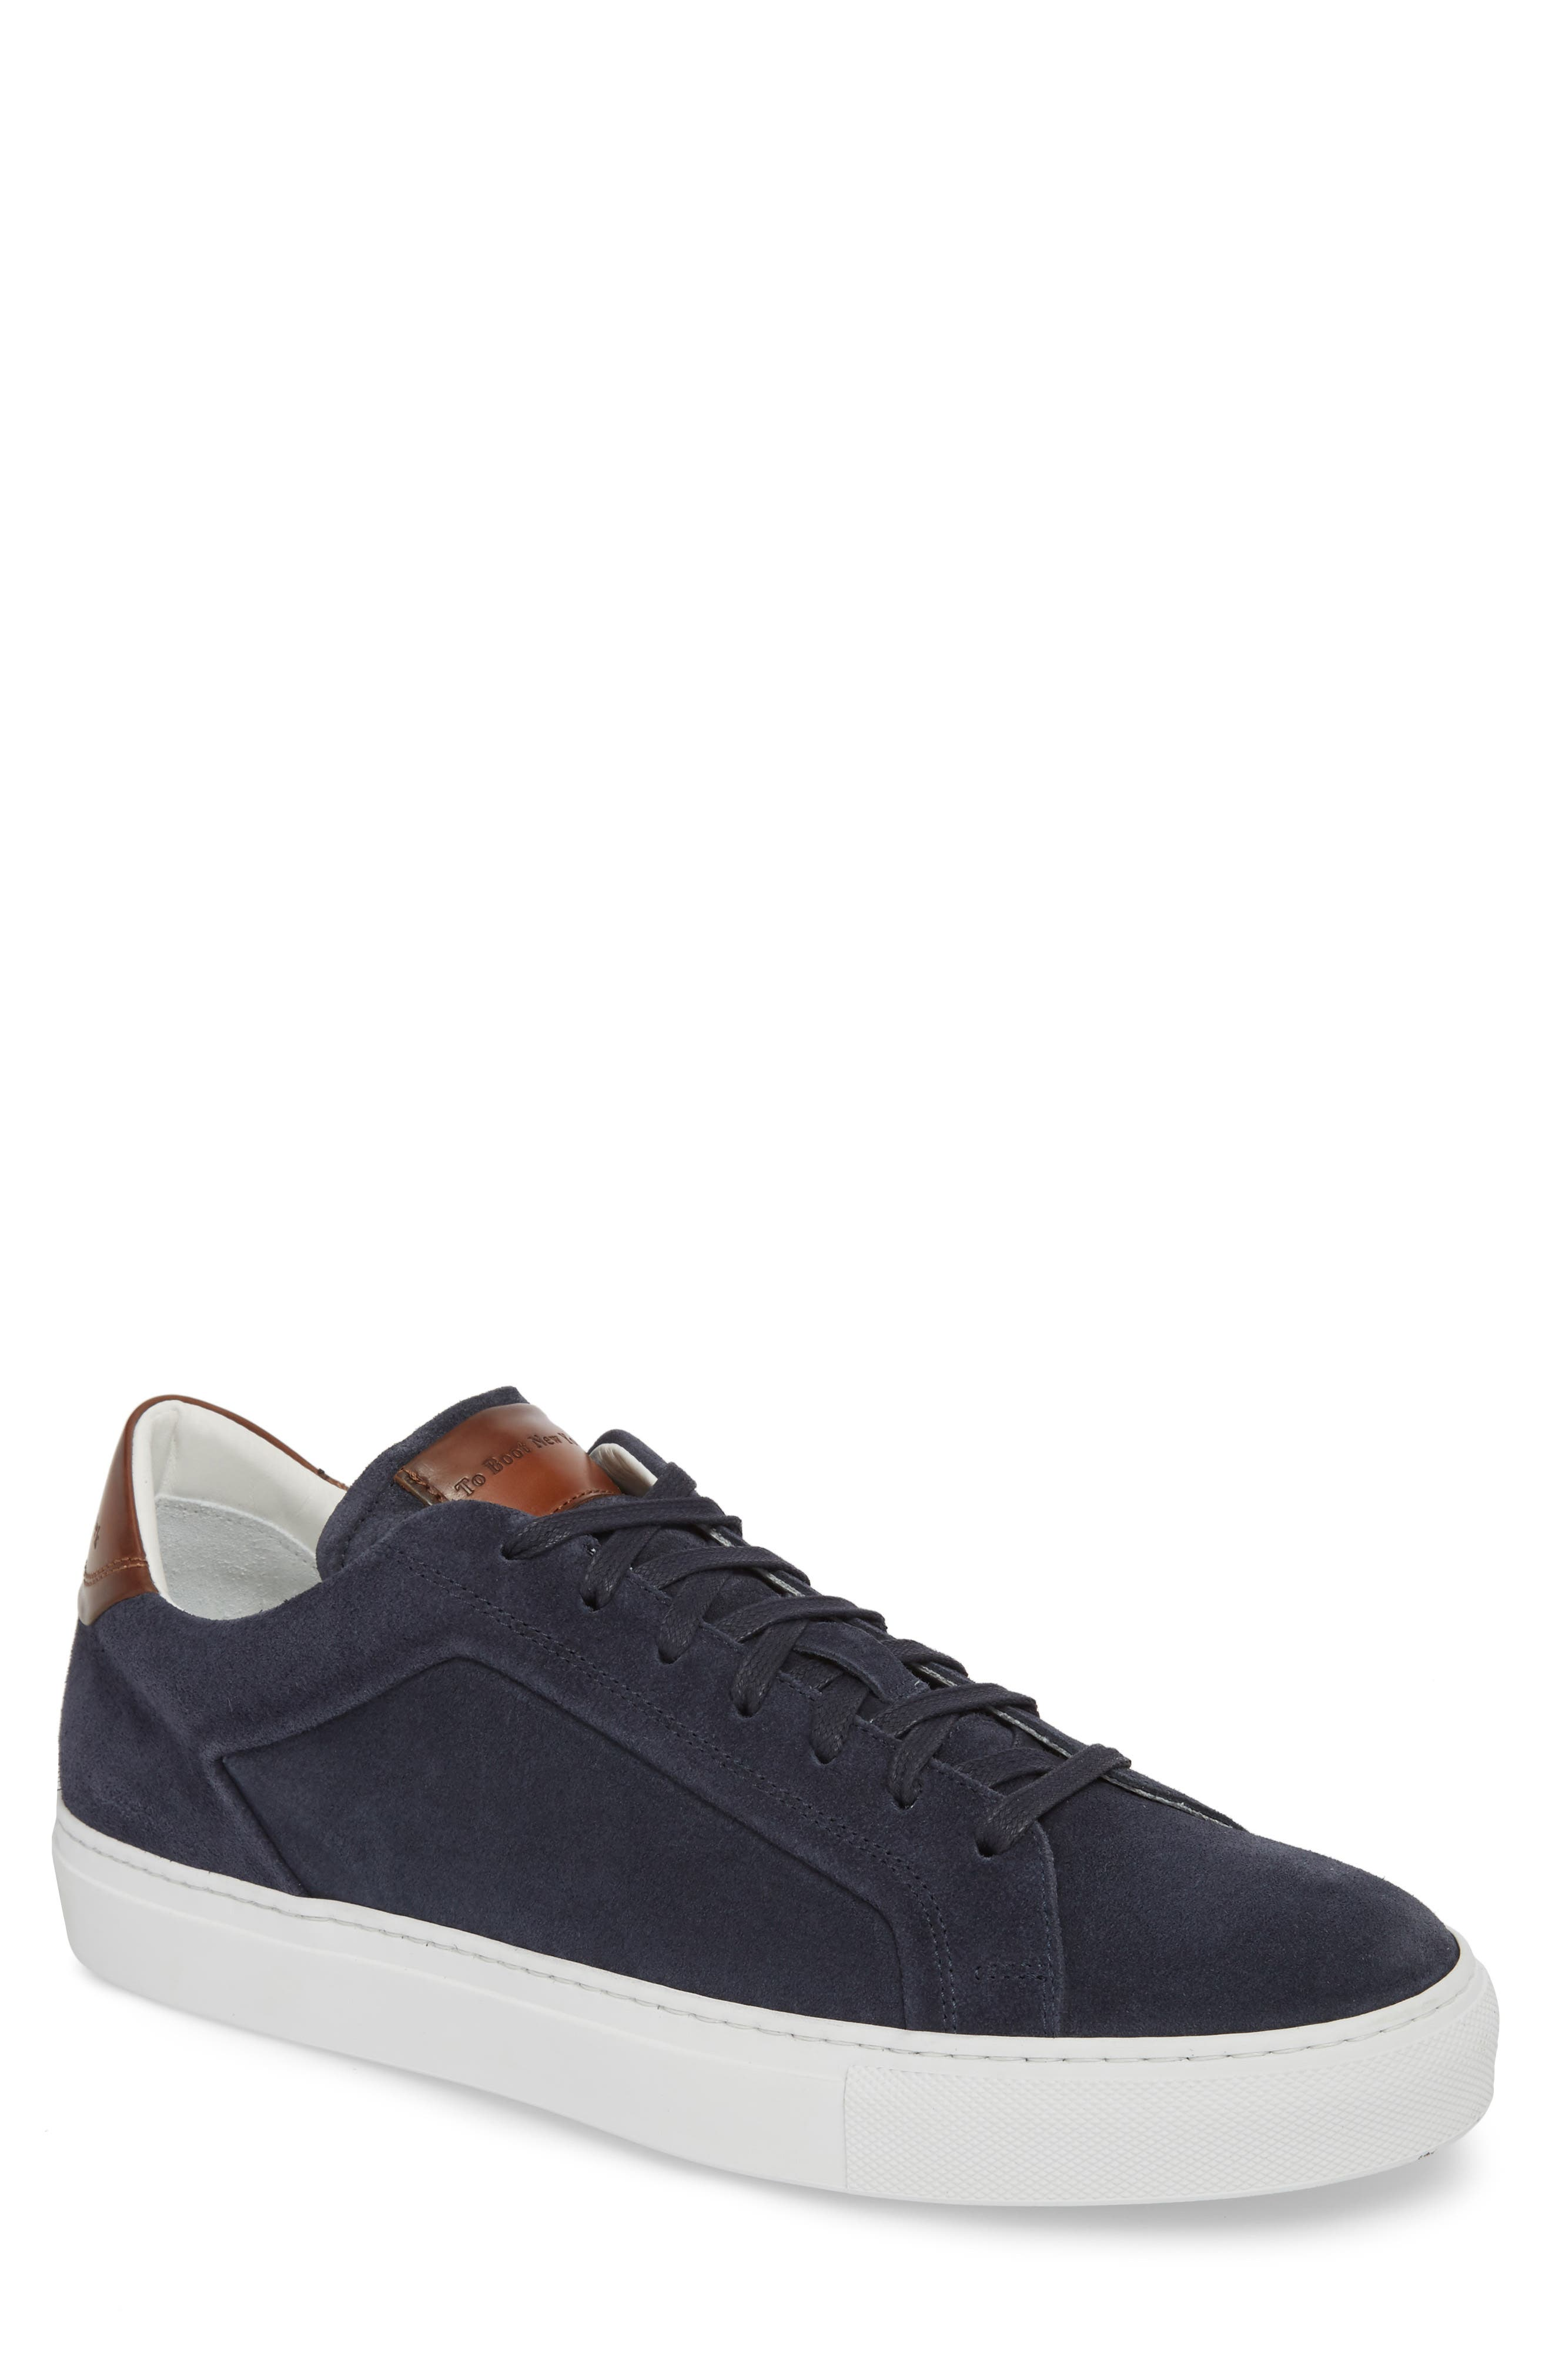 To Boot Men's Britt Low Top Sneaker pA1rv